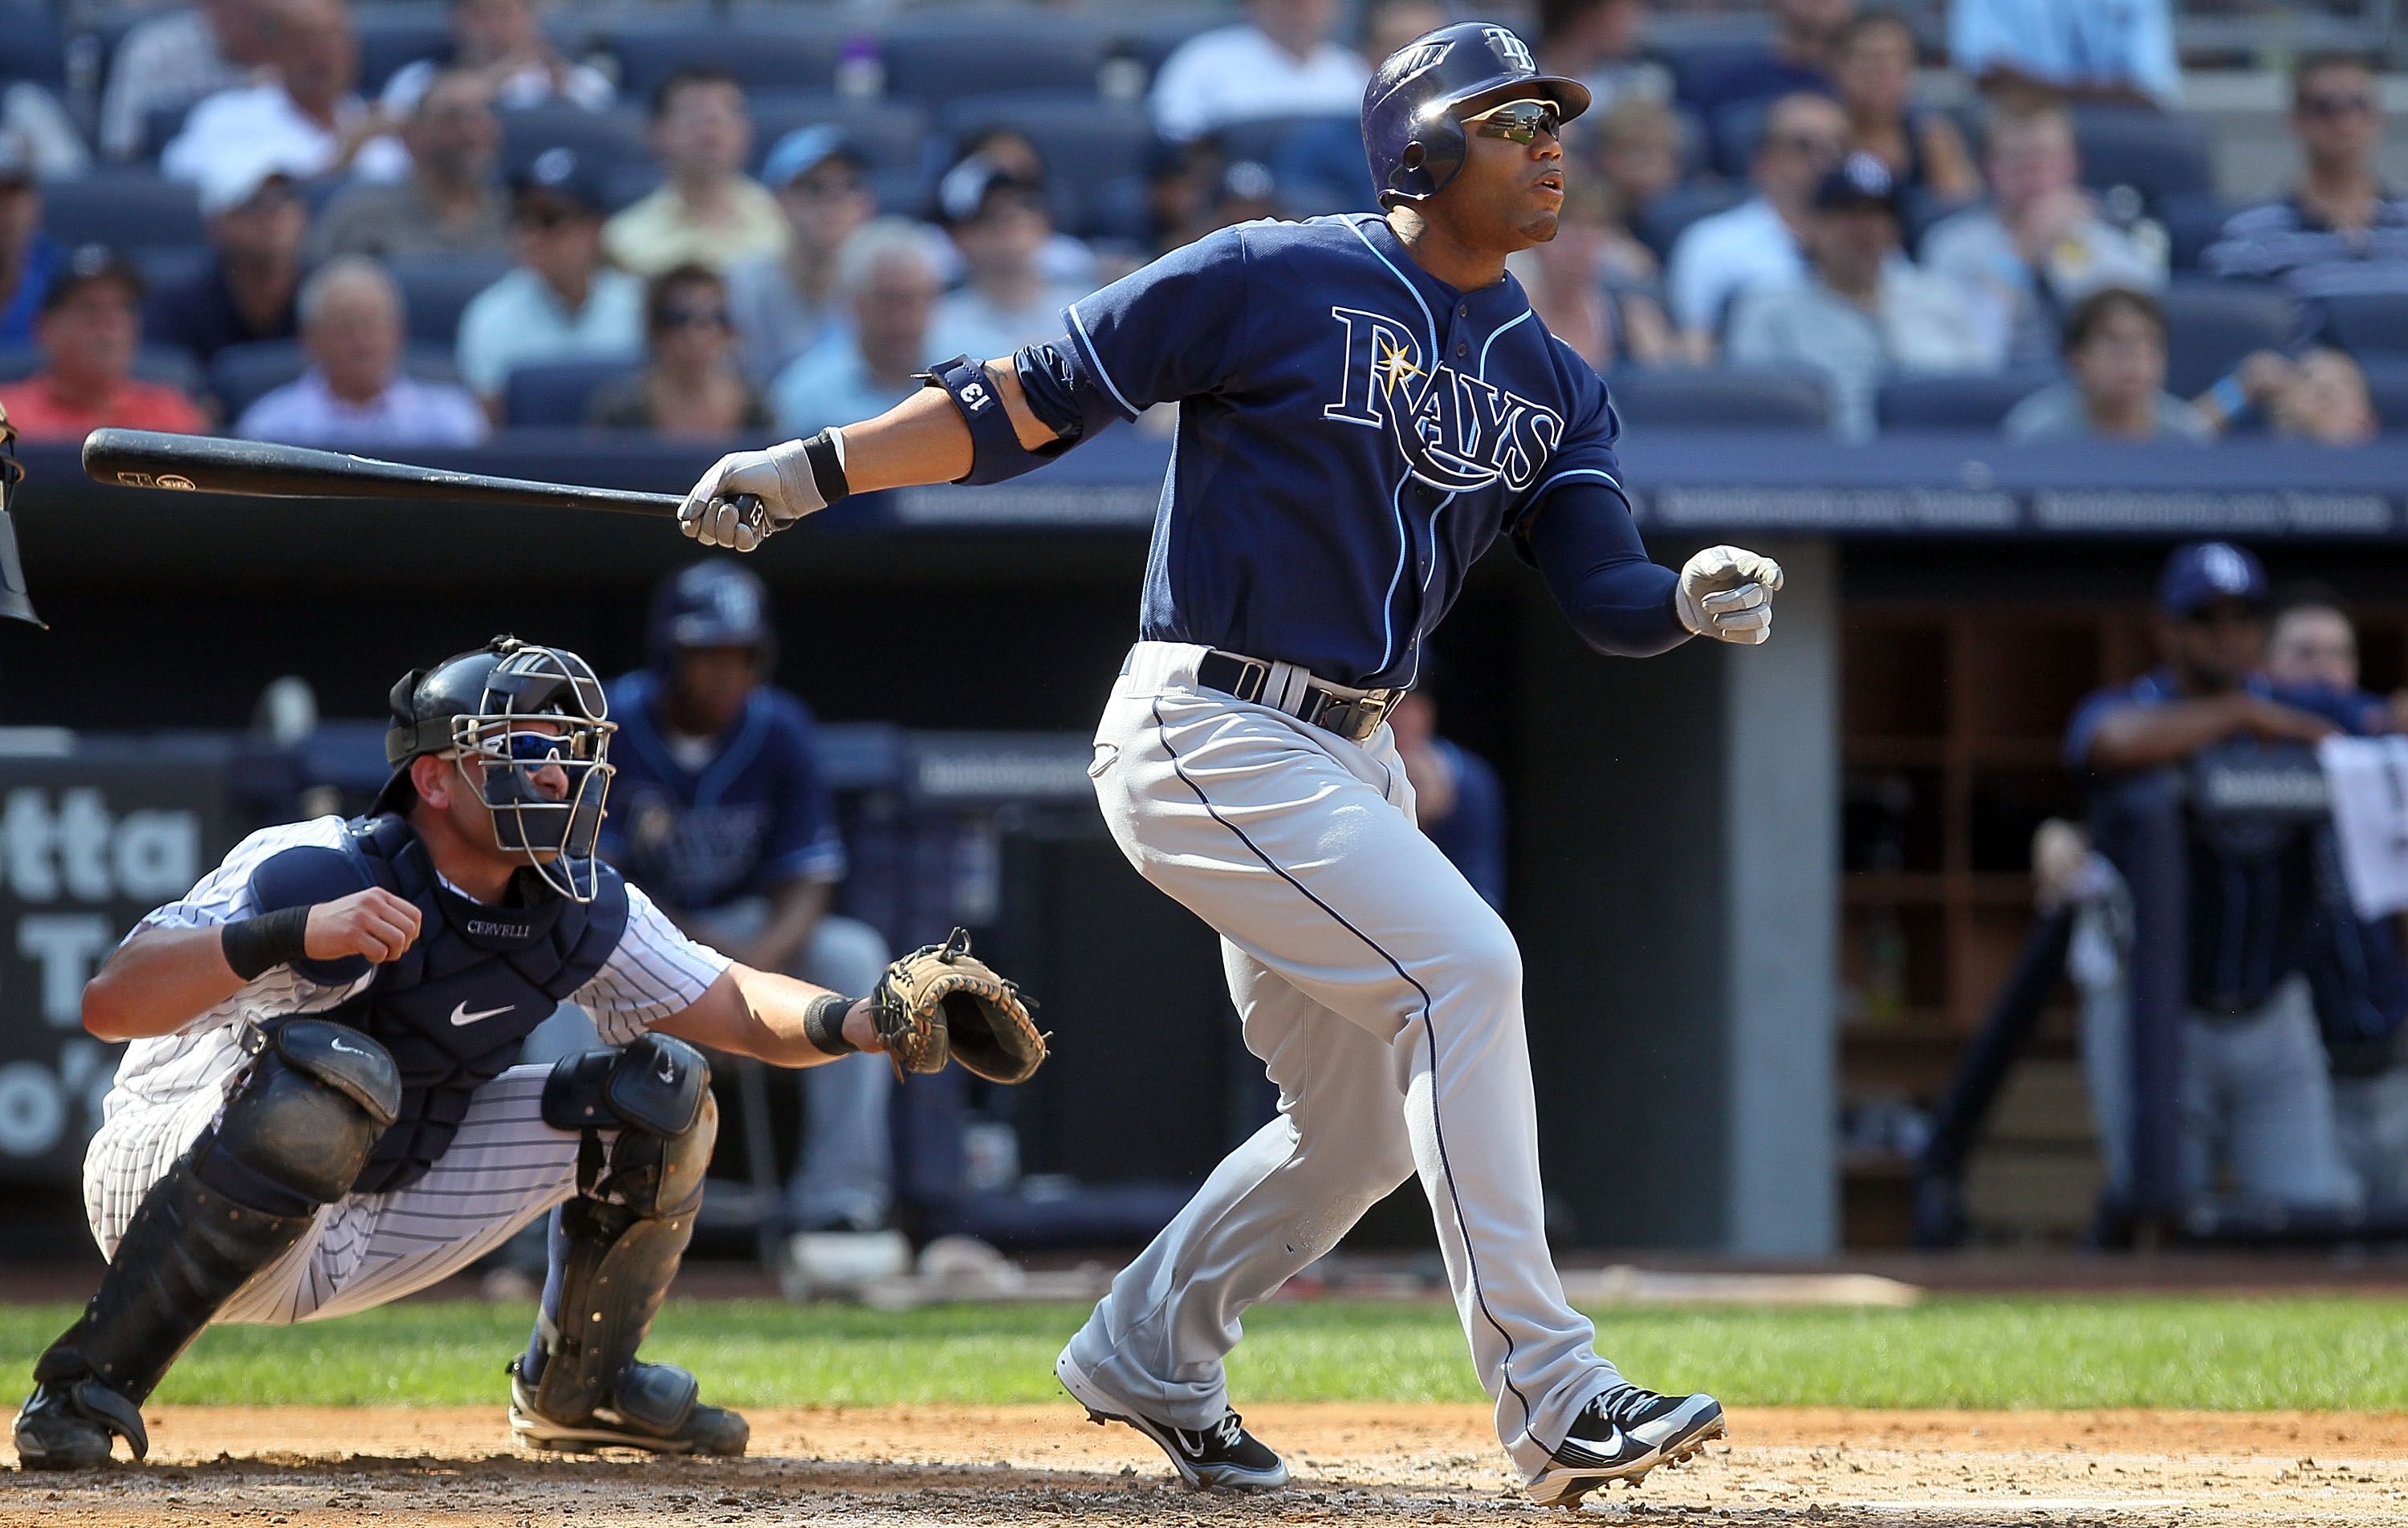 NEW YORK - JULY 17:  Carl Crawford #13 of the Tampa Bay Rays bats against the New York Yankees on July 17, 2010 at Yankee Stadium in the Bronx borough of New York City.  (Photo by Jim McIsaac/Getty Images)